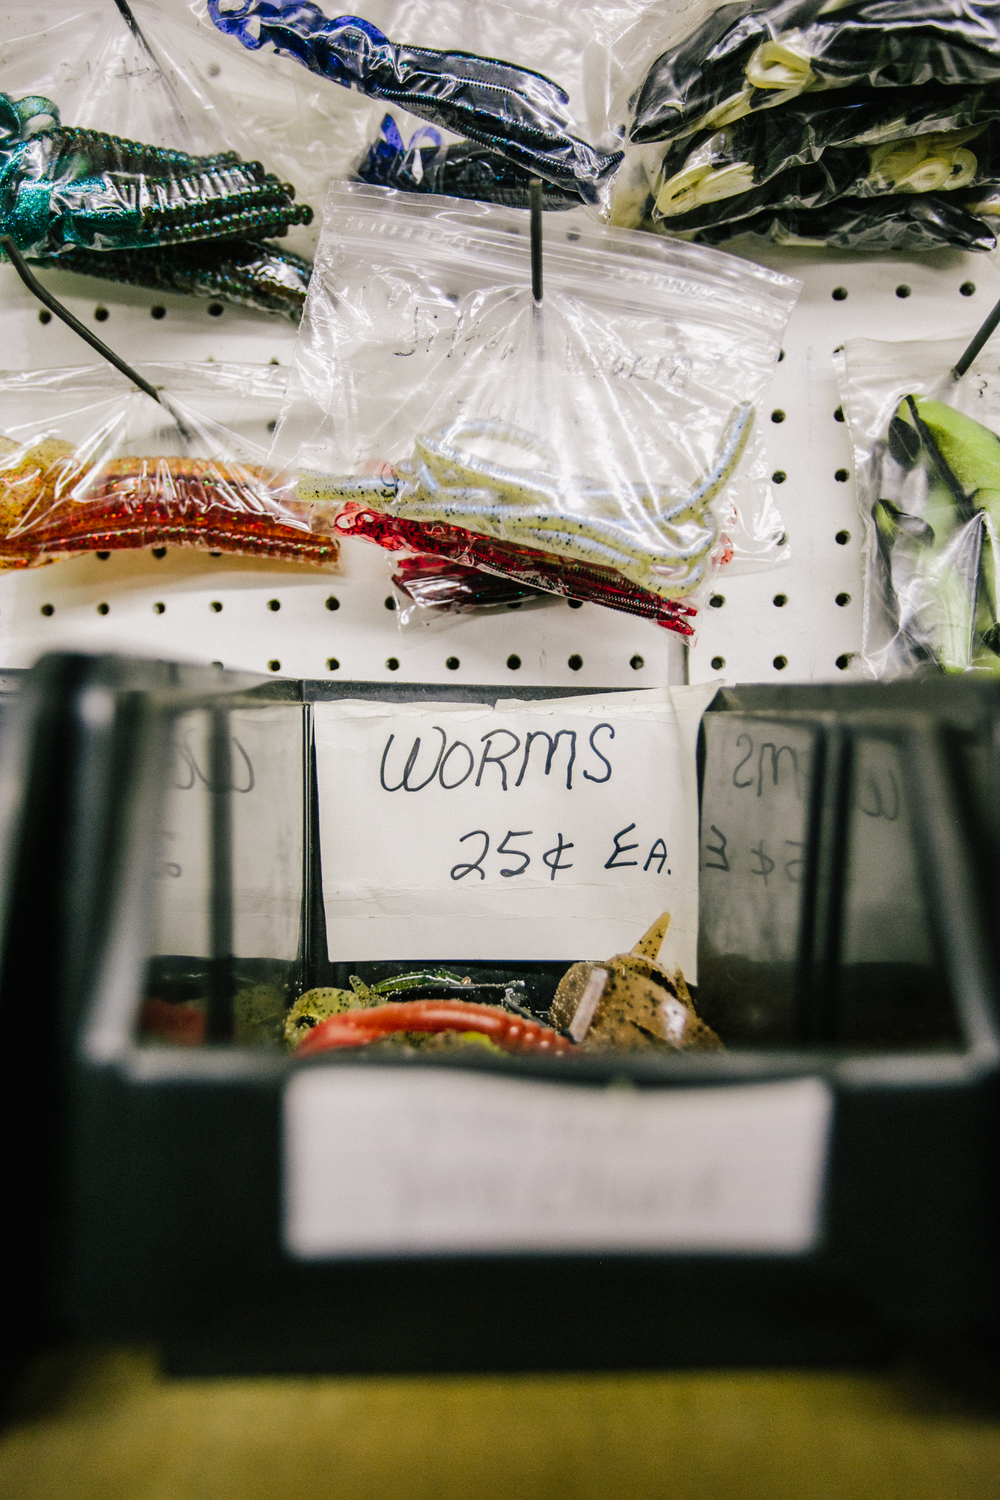 The going rate for worms at Lucky Landing is just a quarter, while a foam bobber will run you about 65 cents.